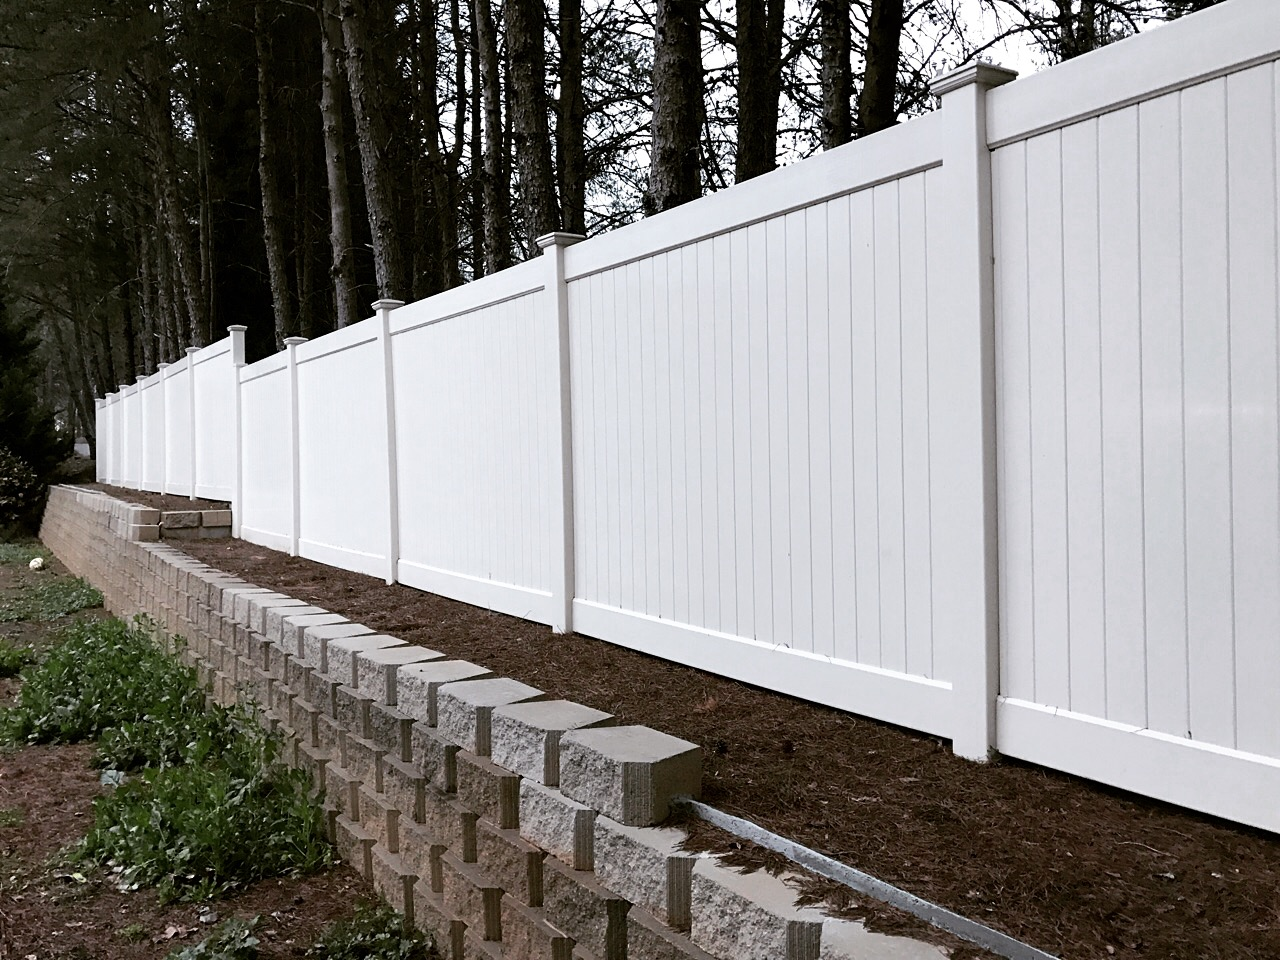 Solid privacy vinyl fence installed on top of a retaining wall